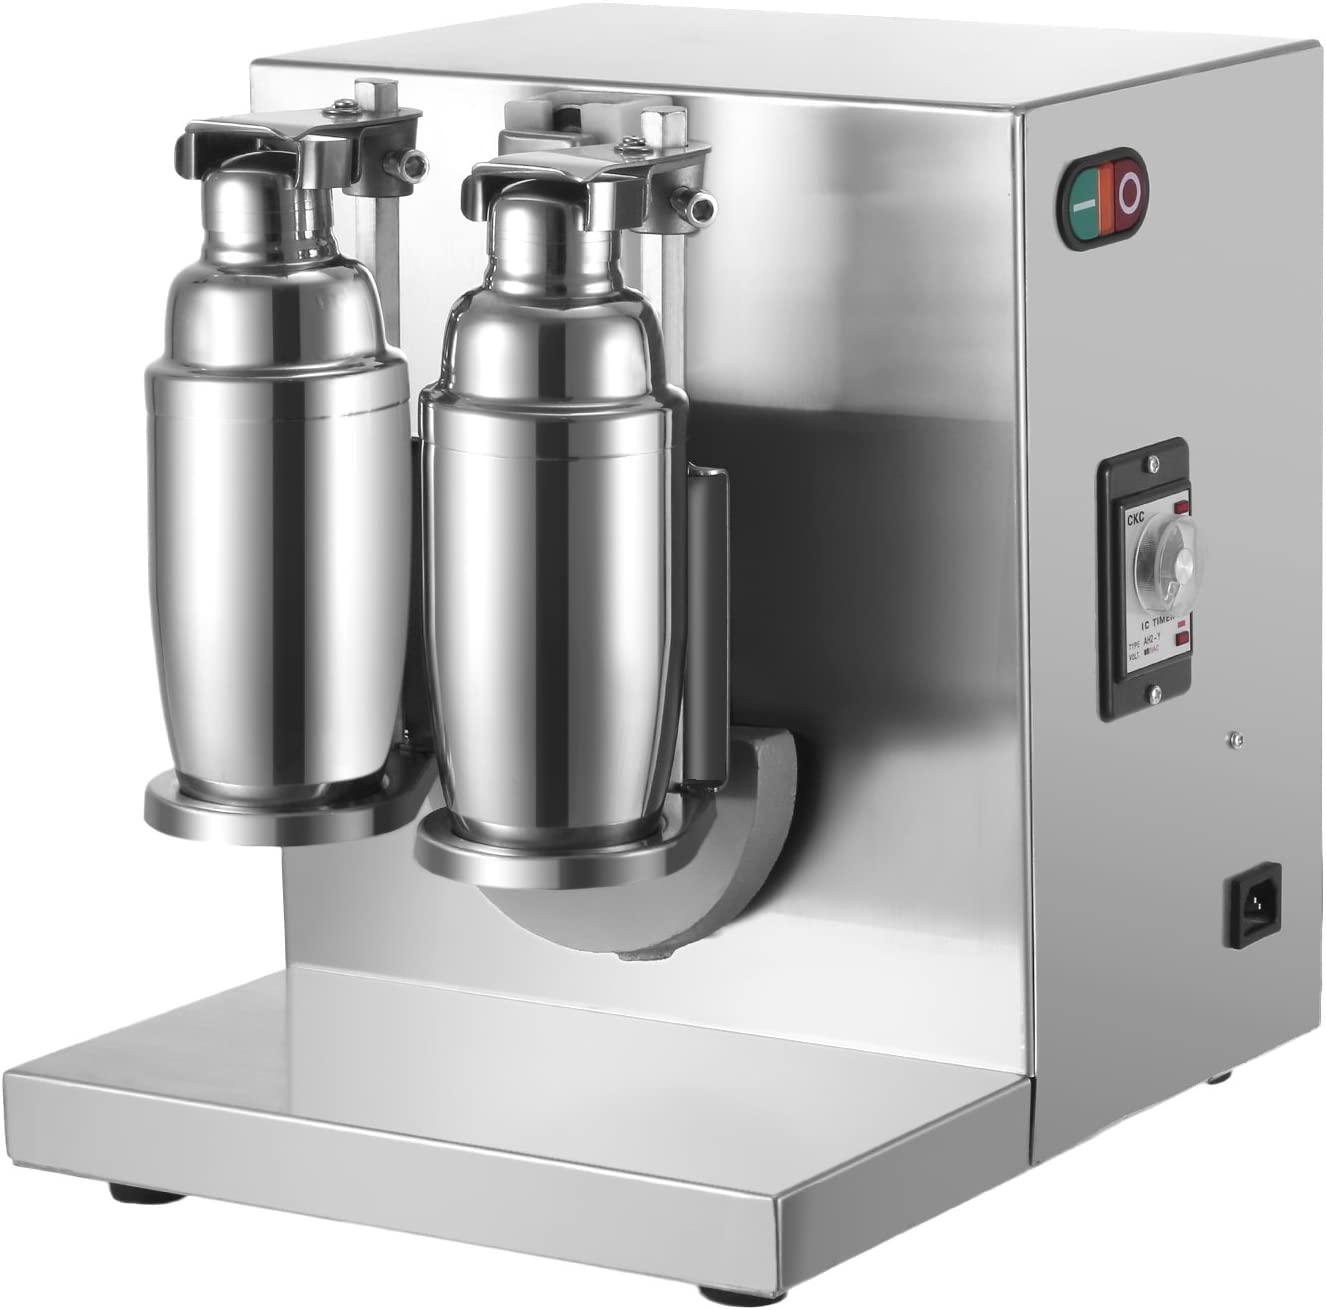 Happybuy 120W 110V Electric Milk Tea Shaker Machine 400r min Double Frame Auto Stainless Steel for Restaurant, 35x12x14 Inch, Sliver